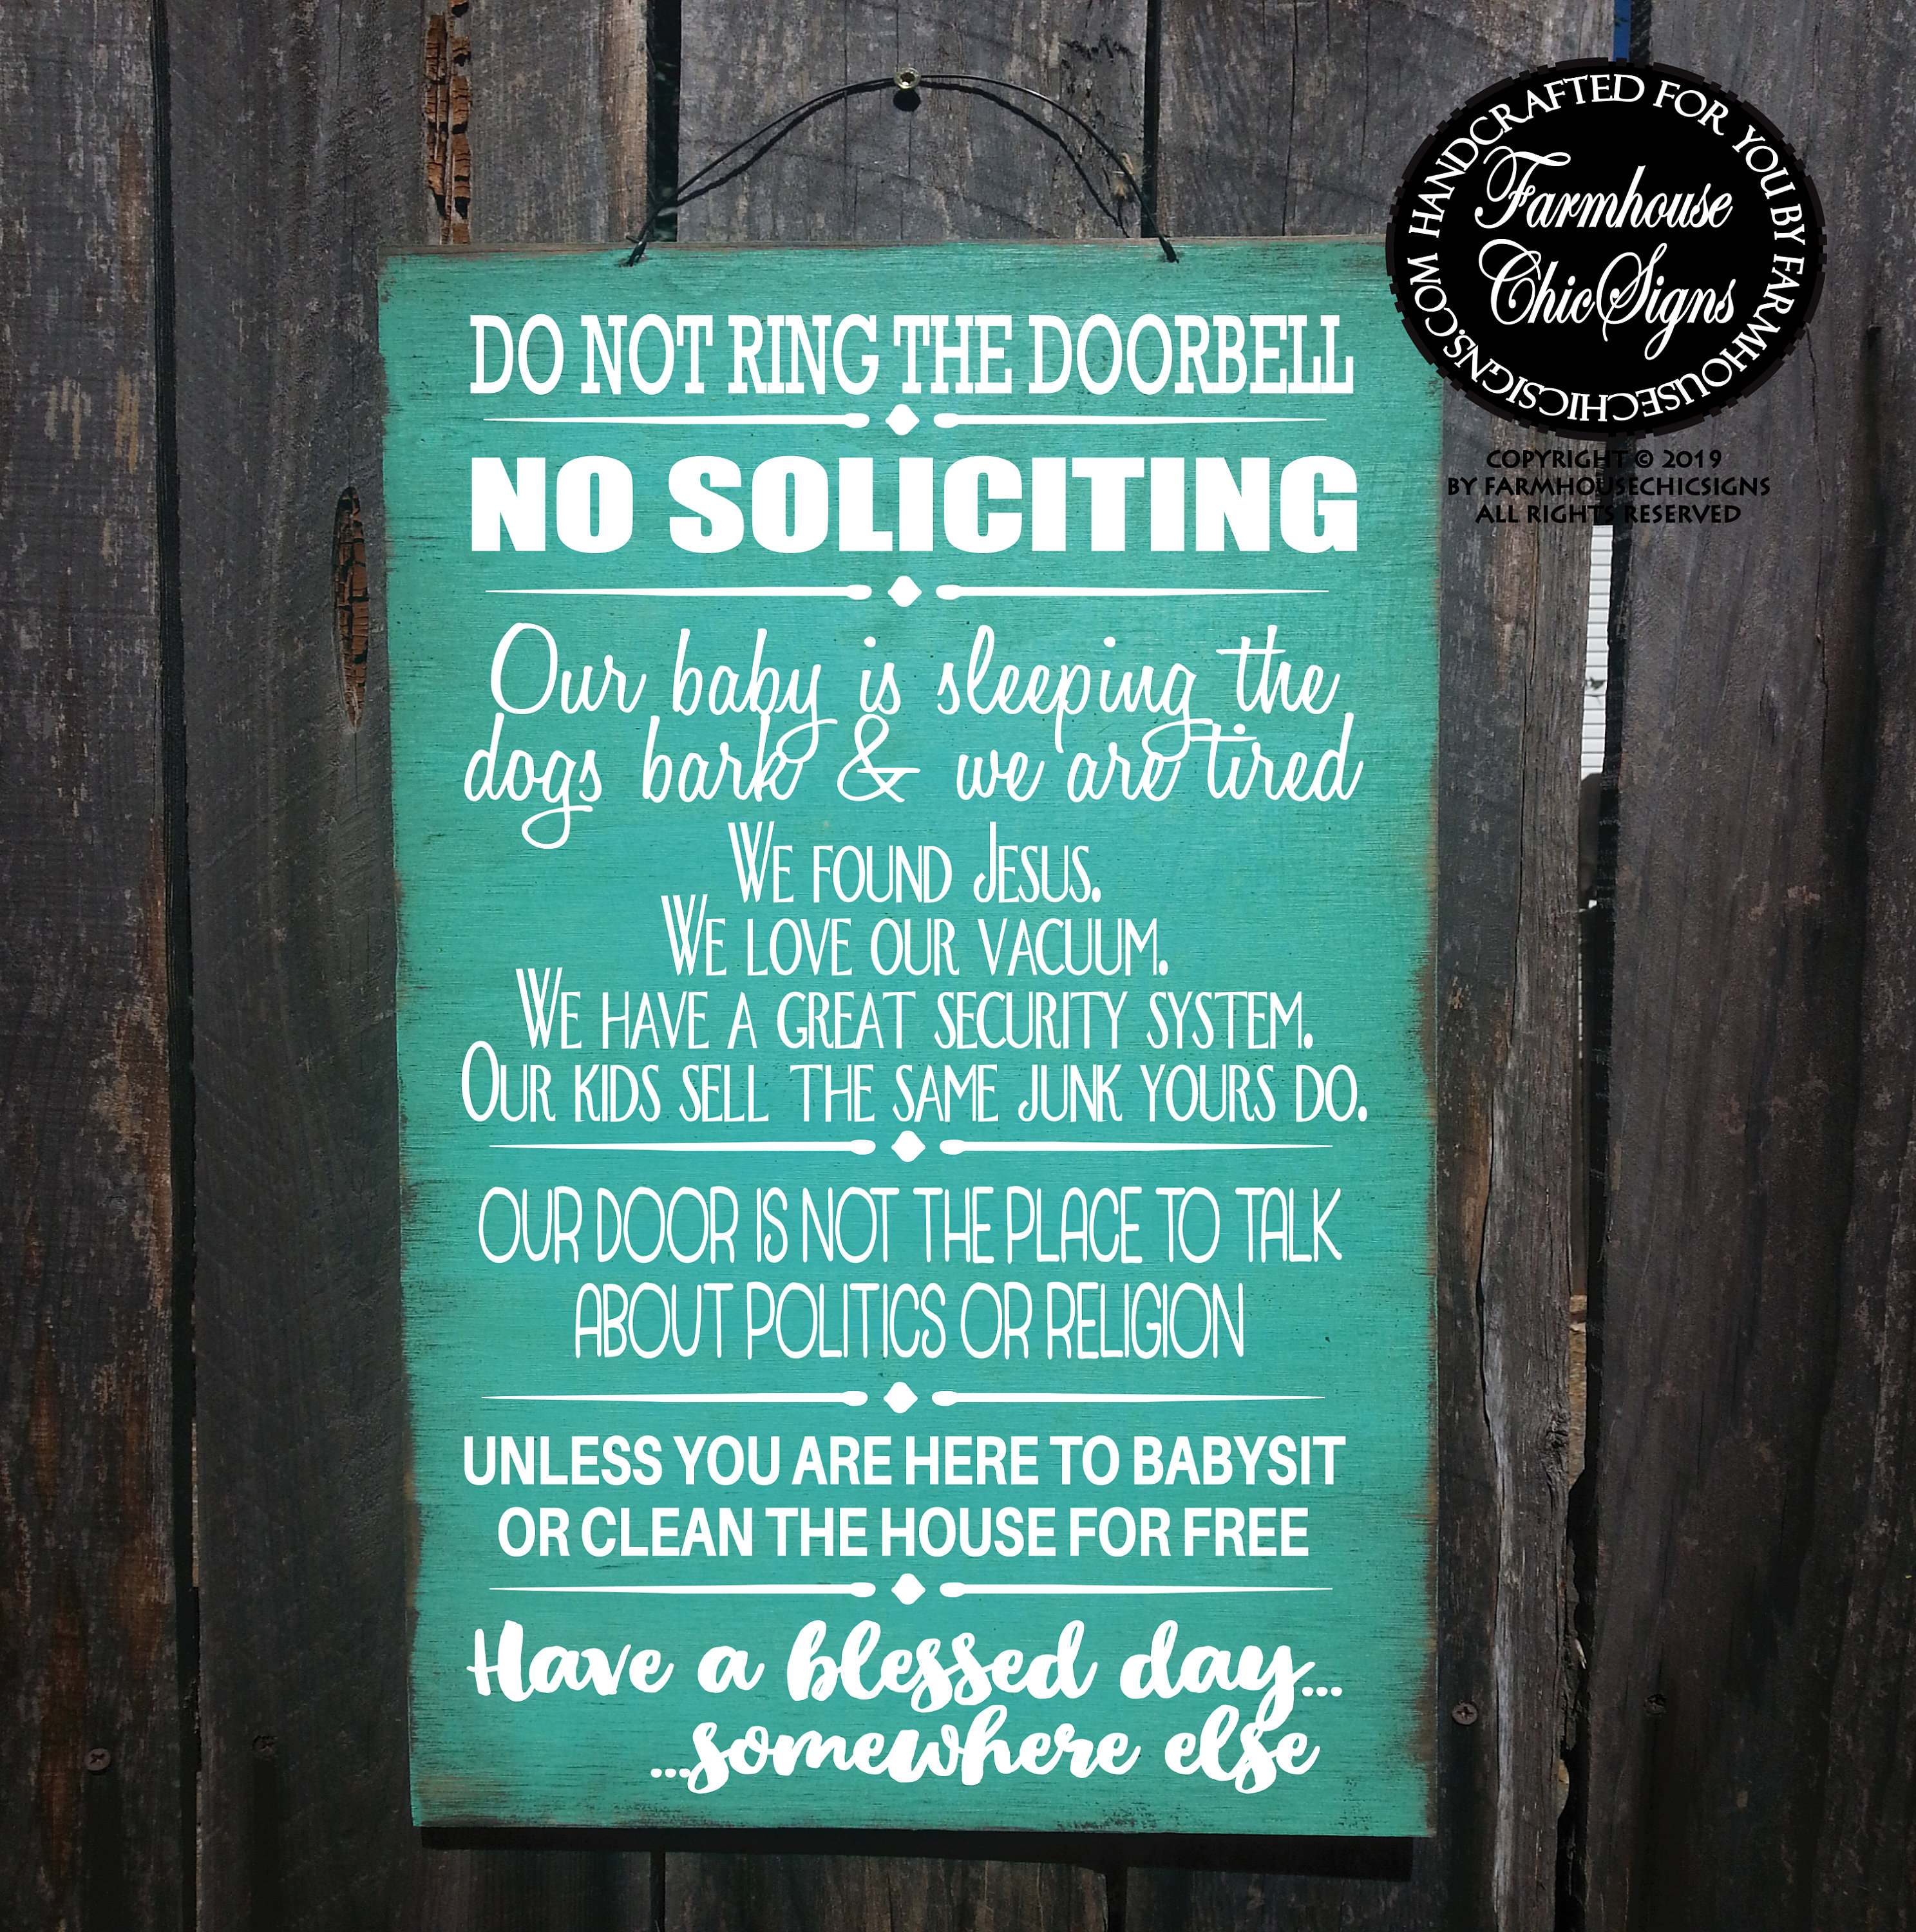 No soliciting signs No Soliciting,Wooden Sign,Woodworking,Home Decor,Rustic wood sign,Natural Wood,Handmade,Wooden Decor,Farmhouse style